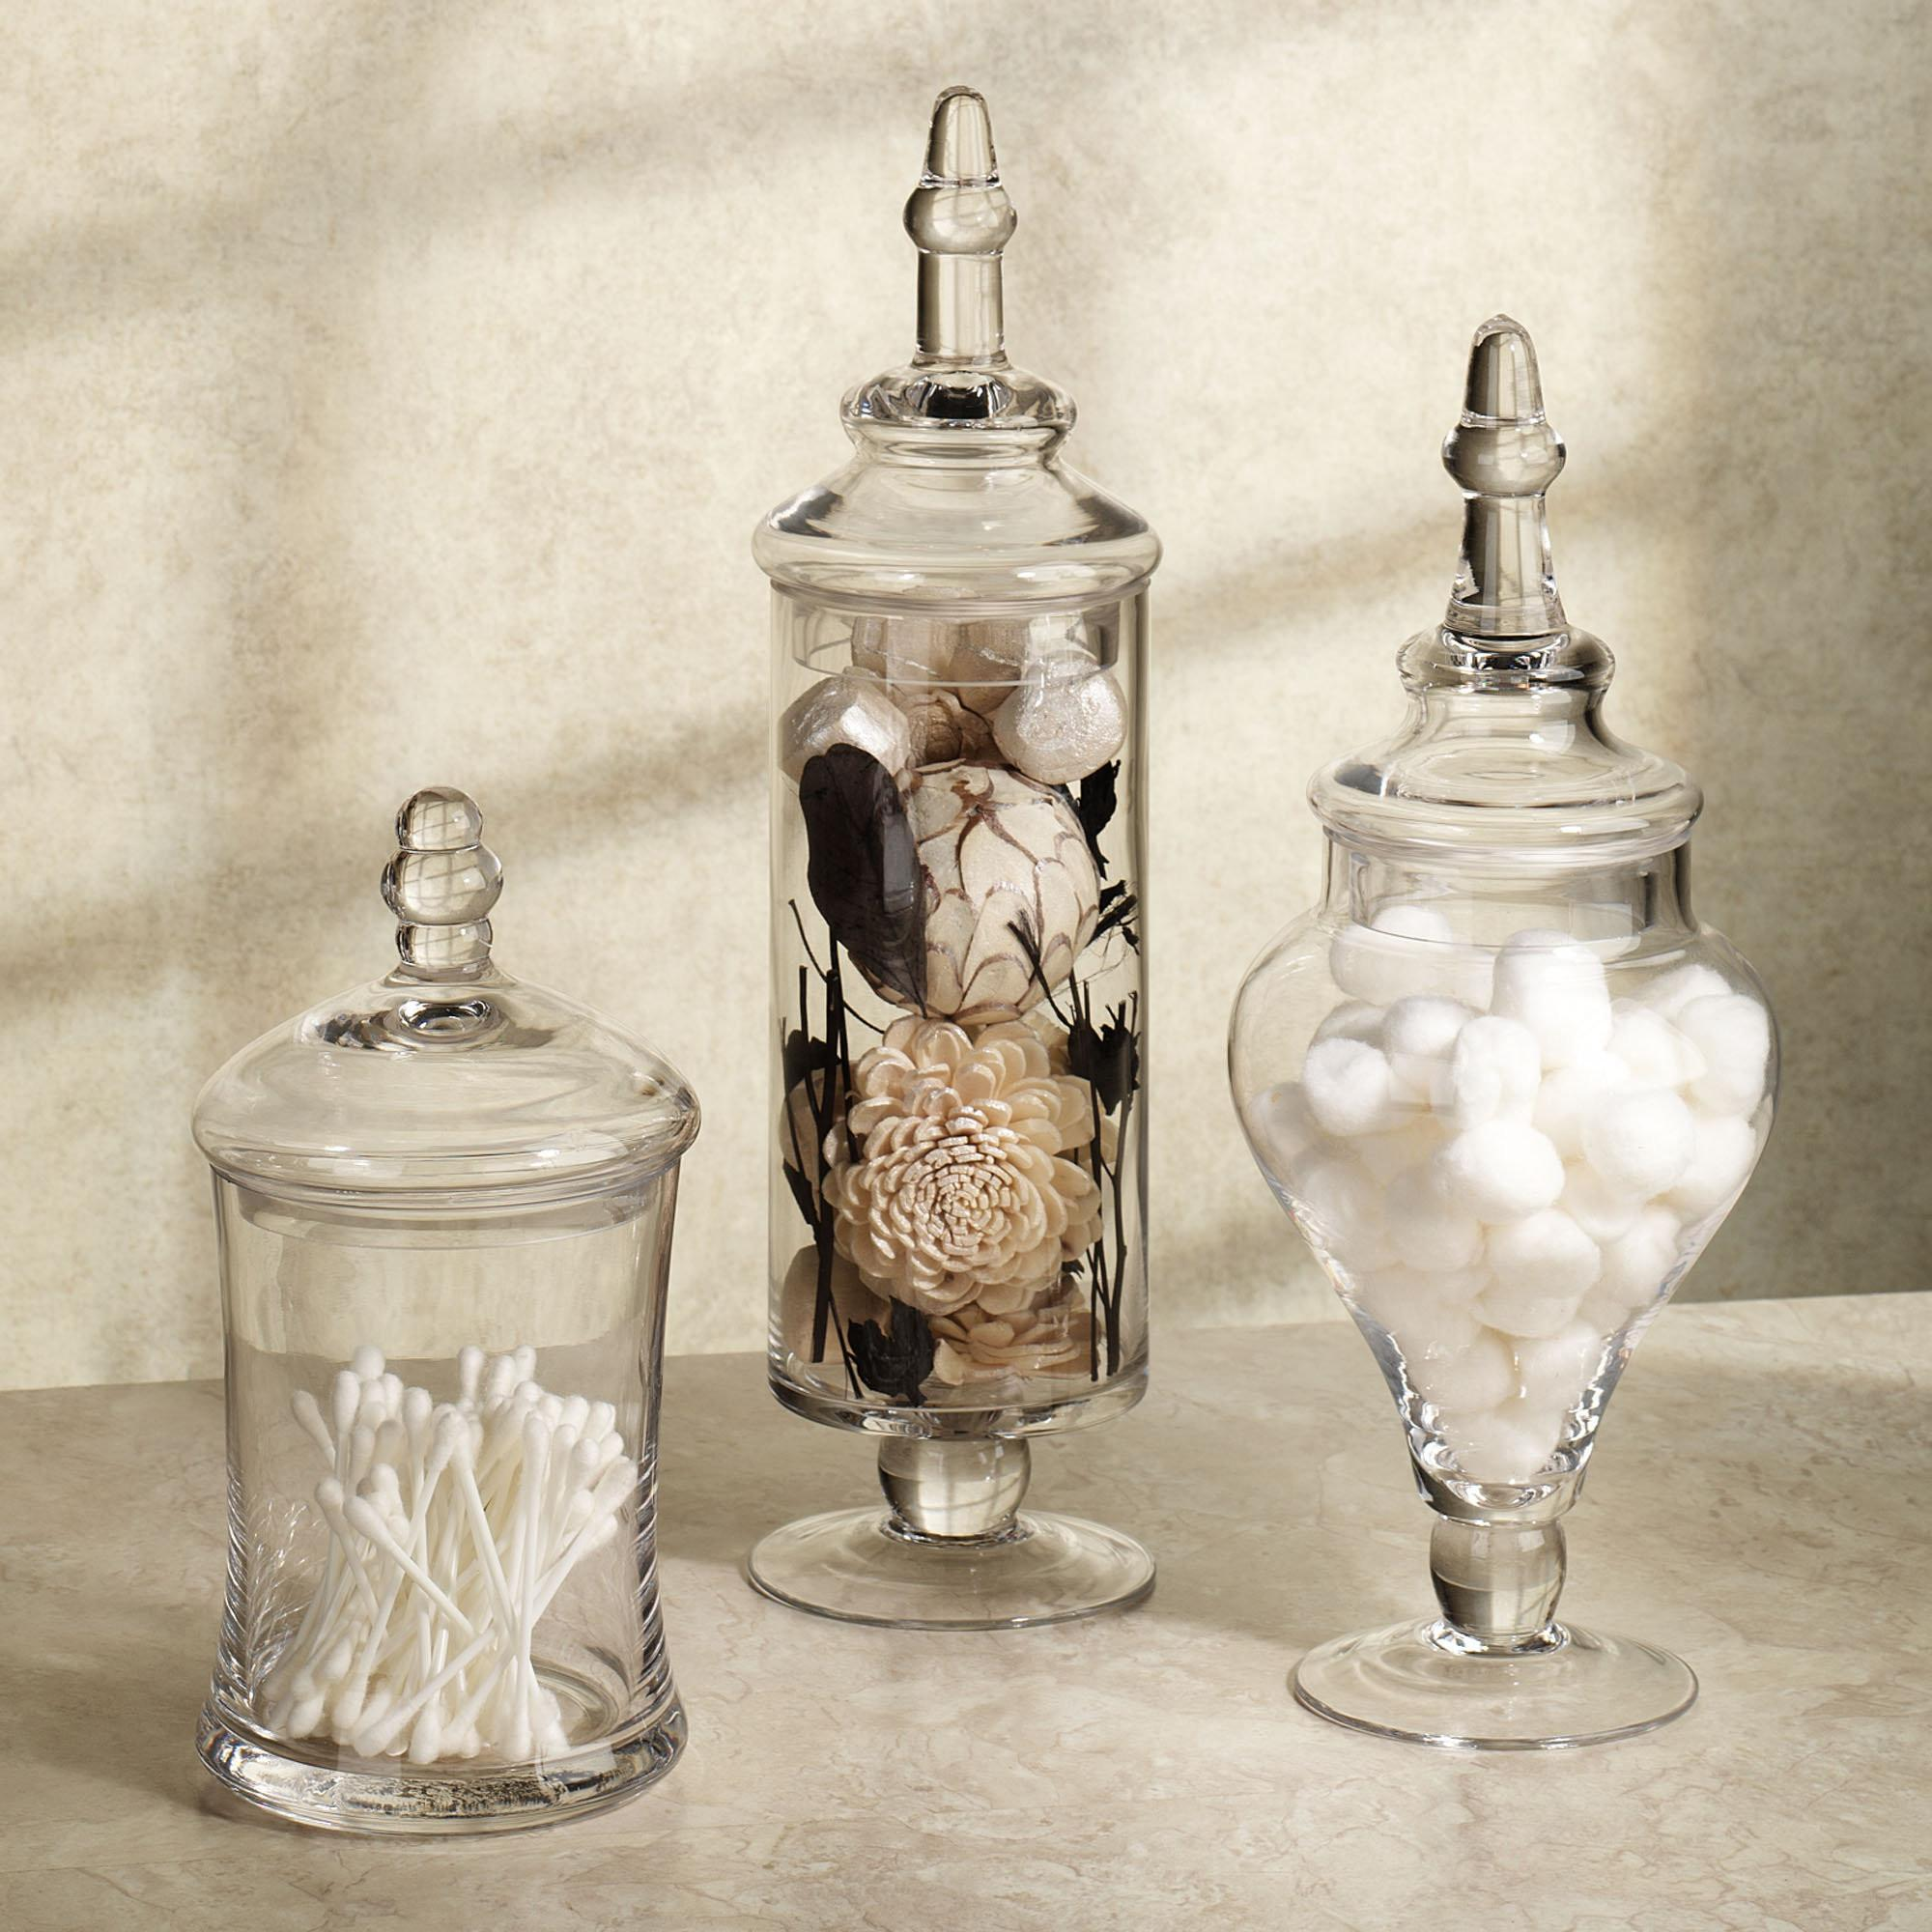 Apothecary Bath Accessories Appealing Glass